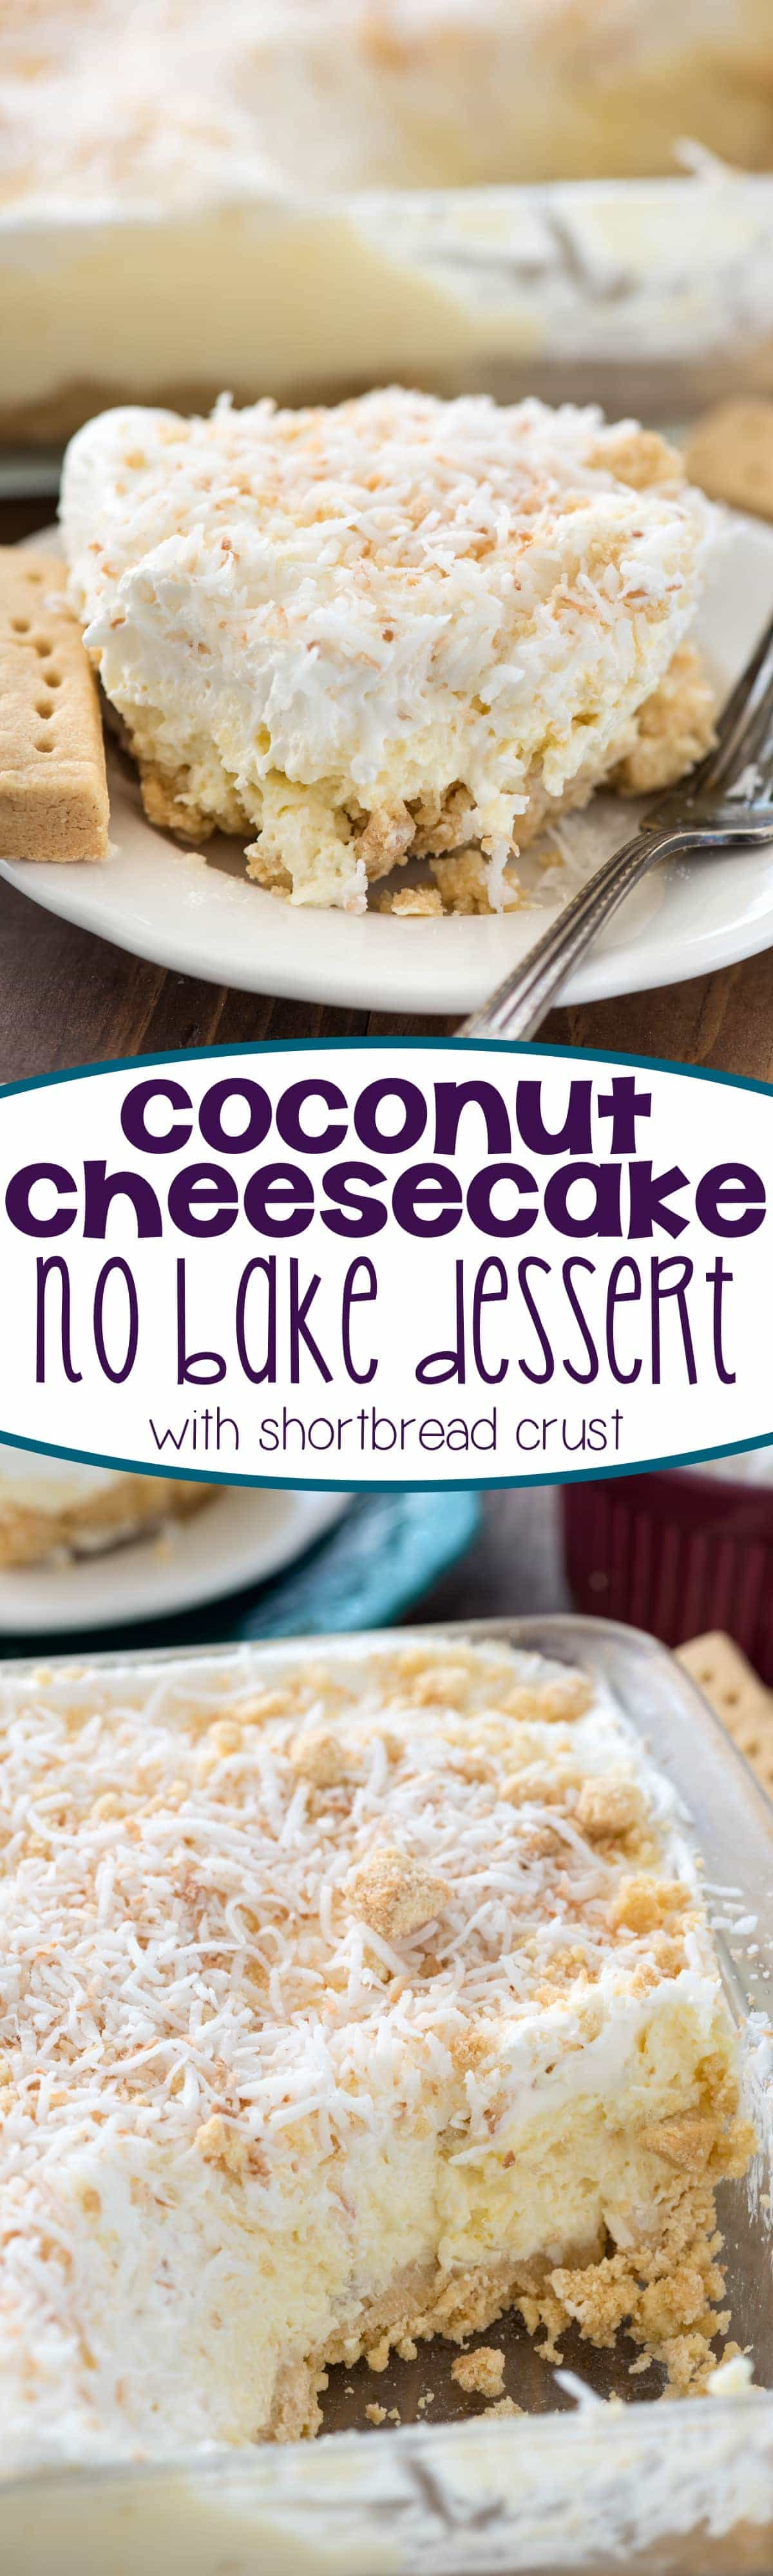 Easy Coconut Cheesecake No Bake Dessert Recipe - this heavenly lush recipe is filled with coconut cheesecake and a shortbread crust! It's a great no bake recipe for a party!